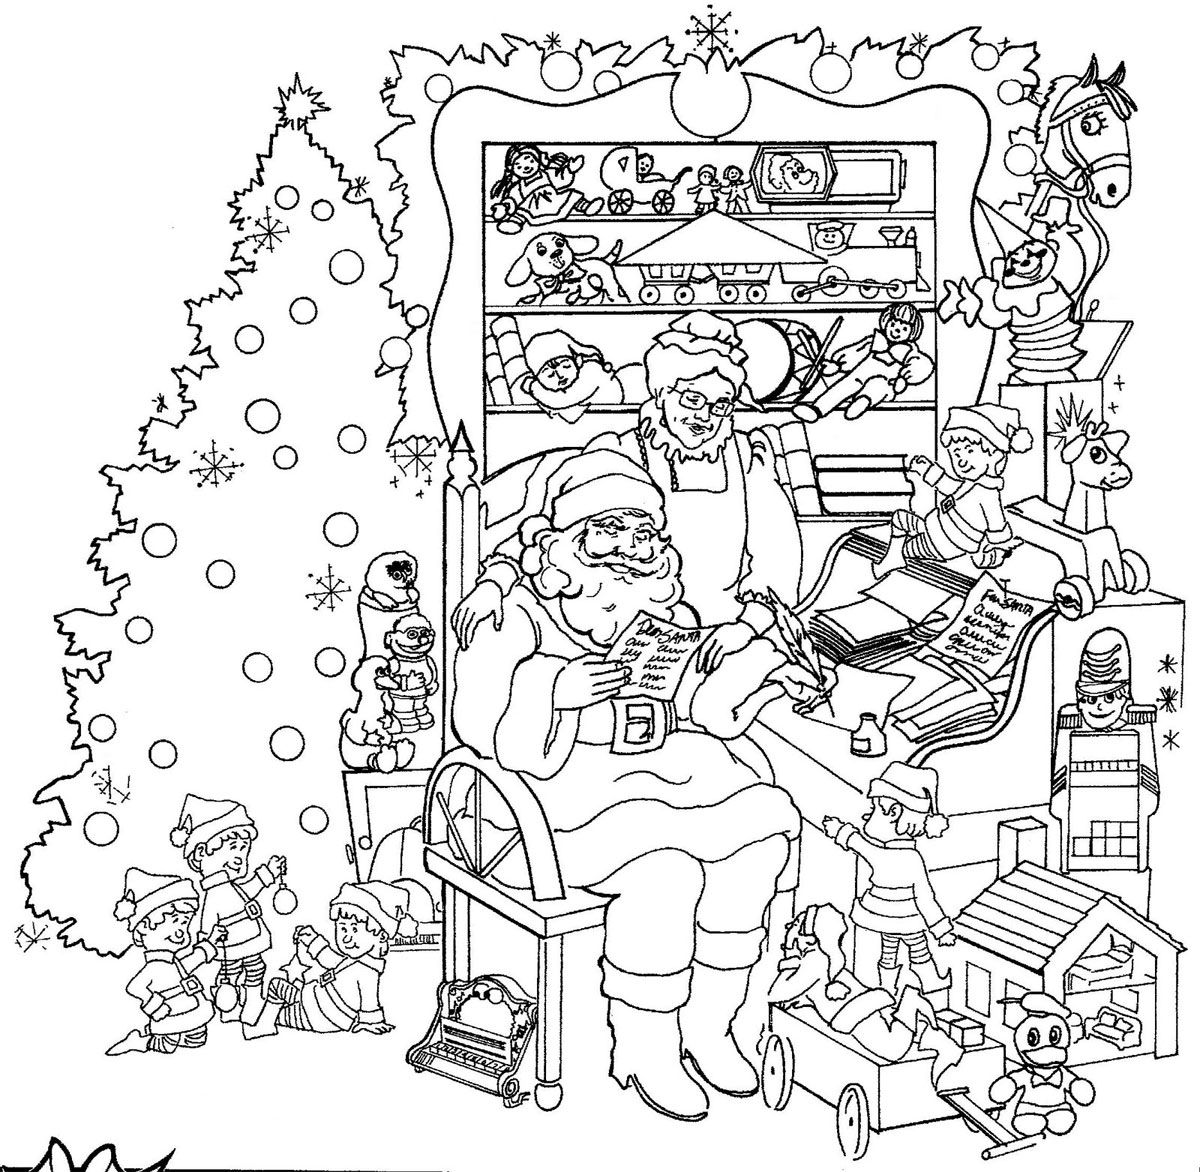 Childrens coloring games online - Santa Christmas Picture Coloring 4 Games The Sun Games Site Flash Games Online Free